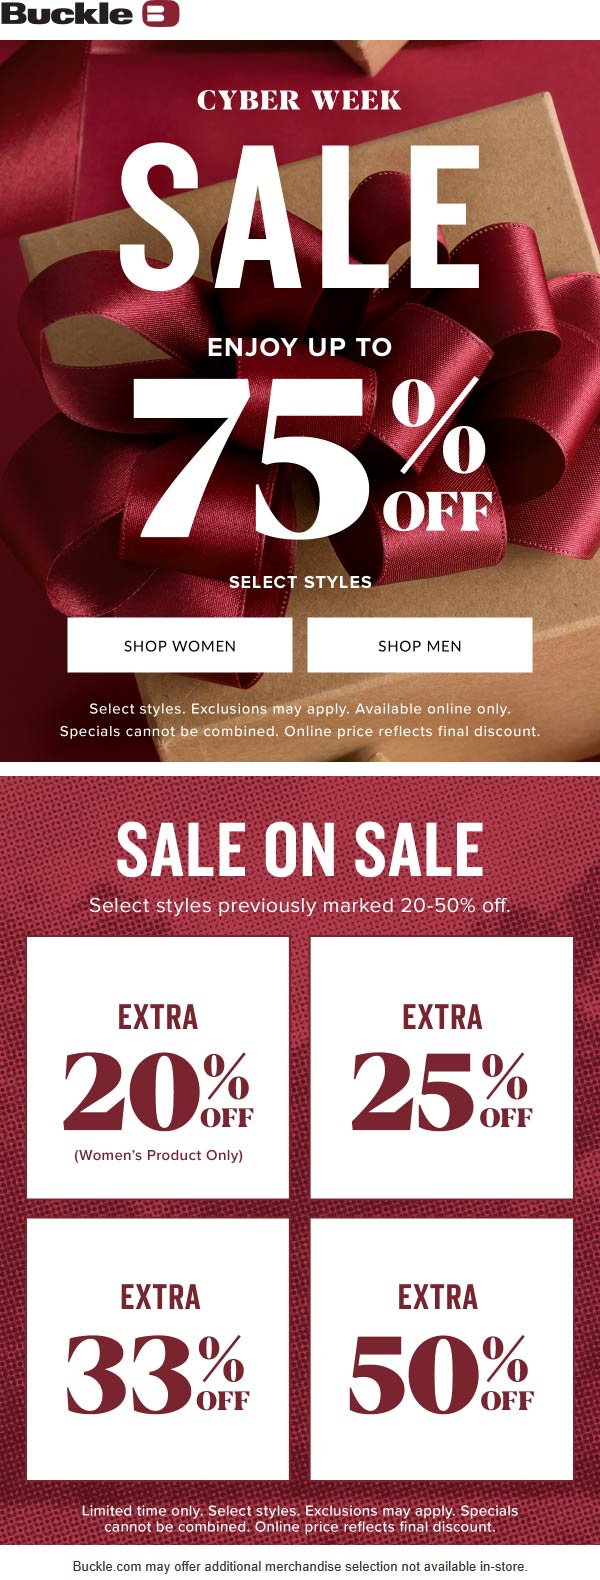 Buckle Coupon January 2020 Extra 50% off sale items at Buckle, ditto online